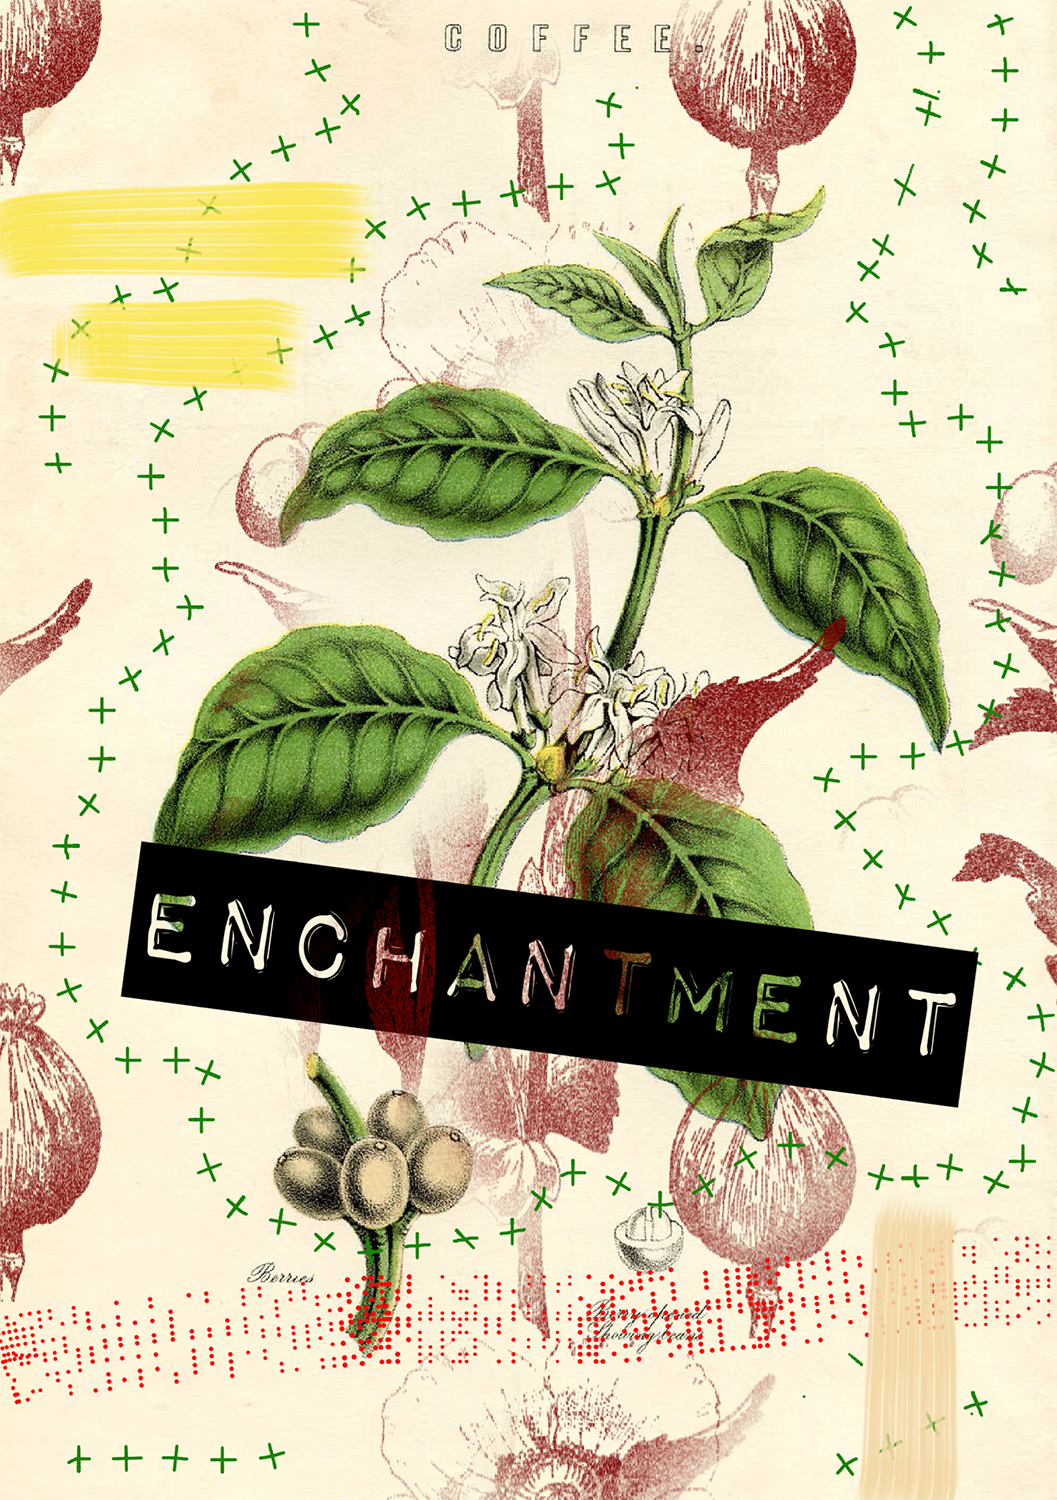 Enchantment. Mixed media. Kate England.